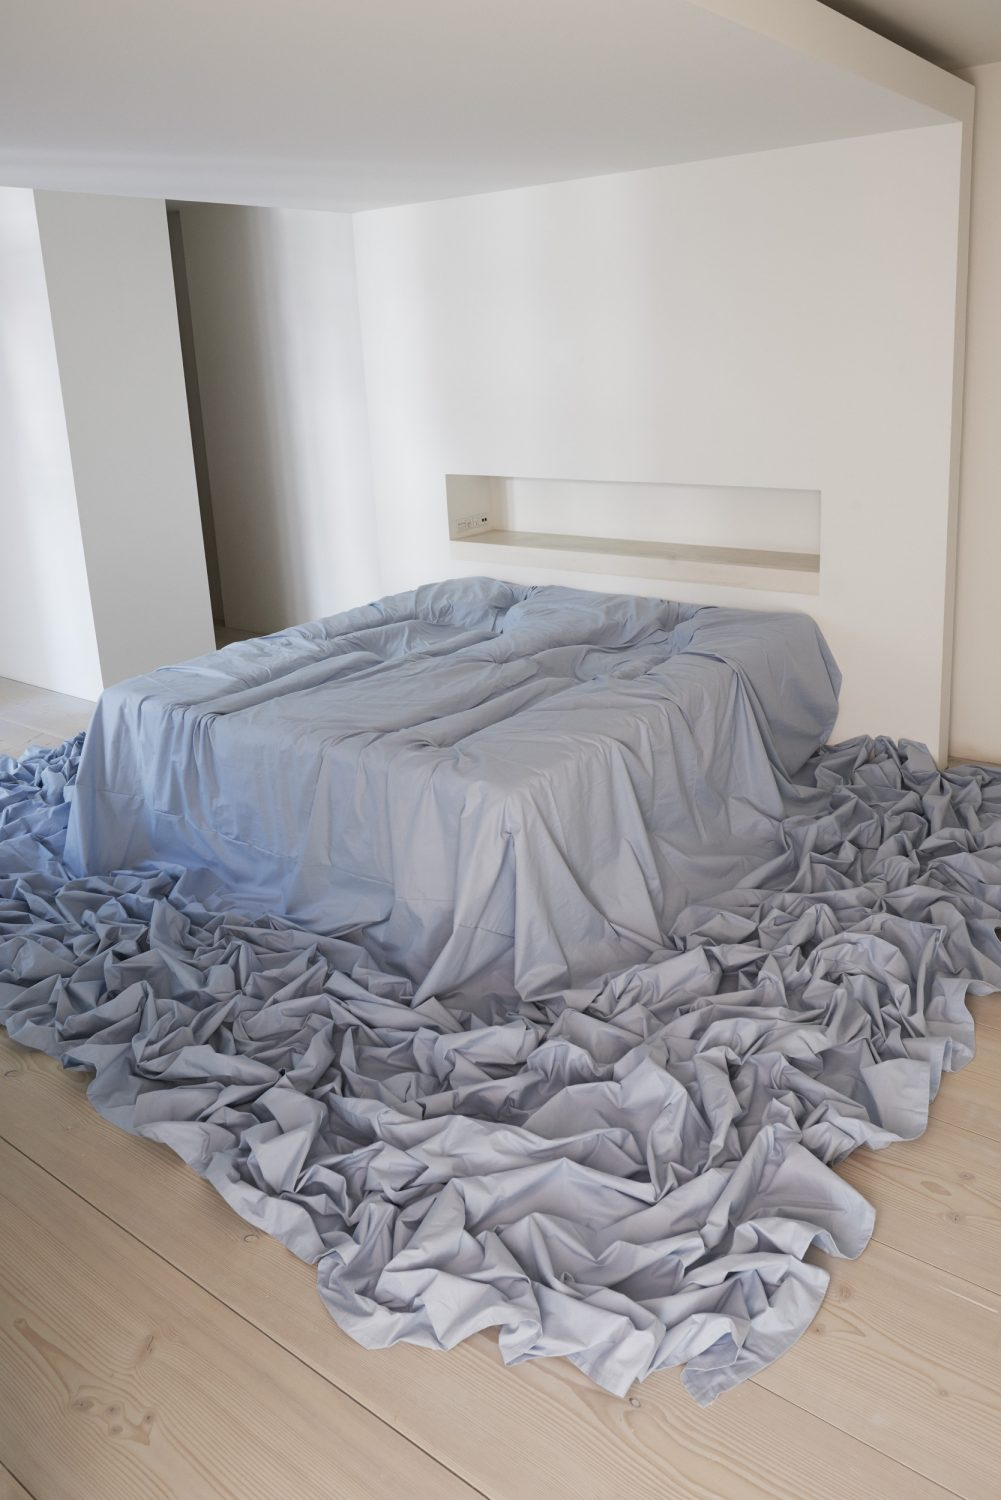 Morningblue, imprints of 2 human bodies in a blue bed_2016